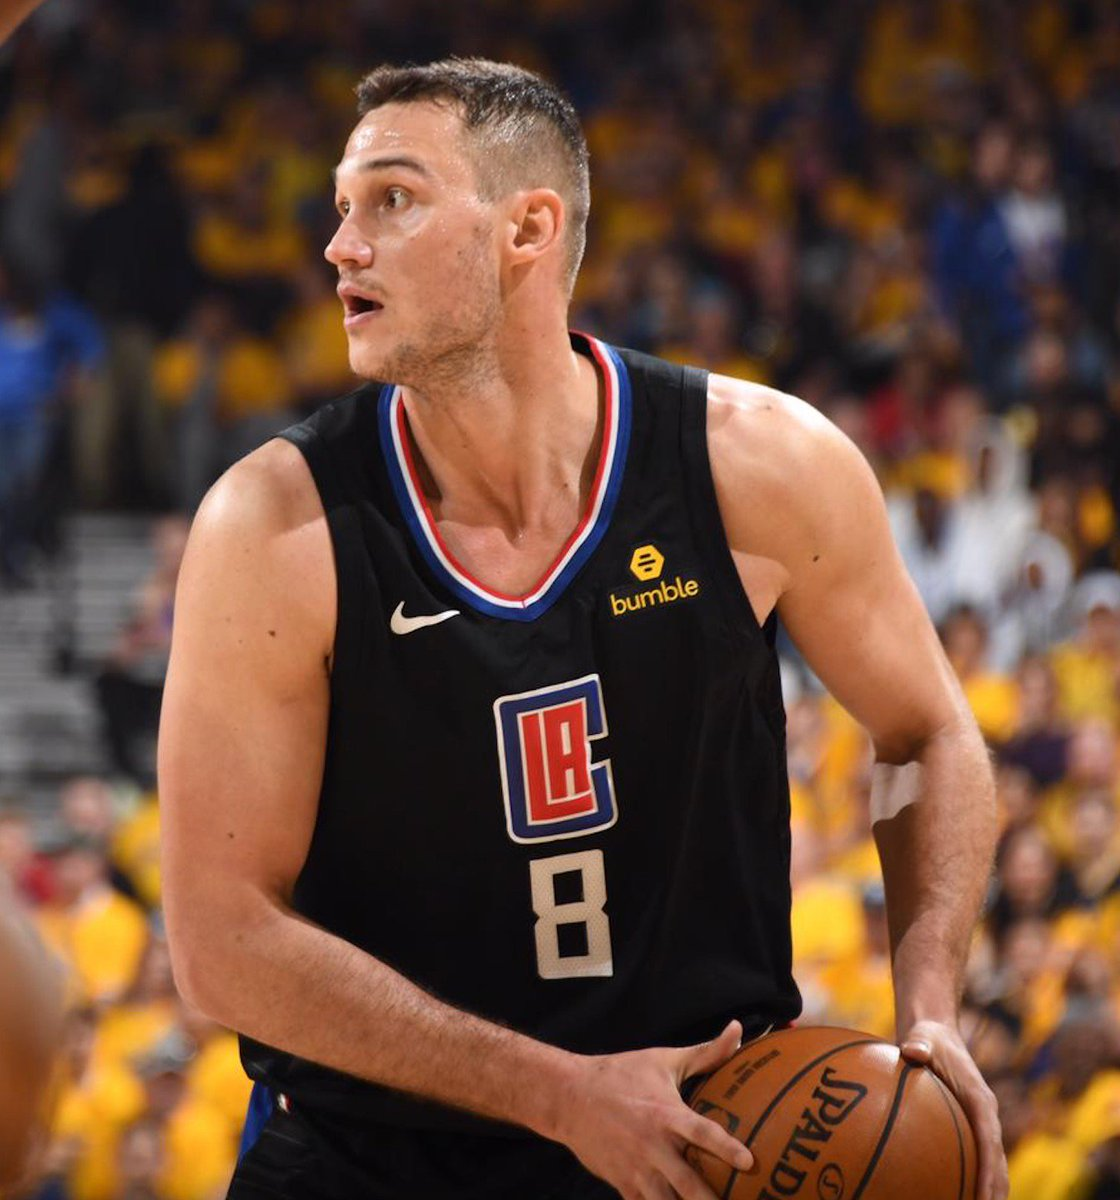 CLIPPERS 135 final 131 WARRIORS Go Gallo....